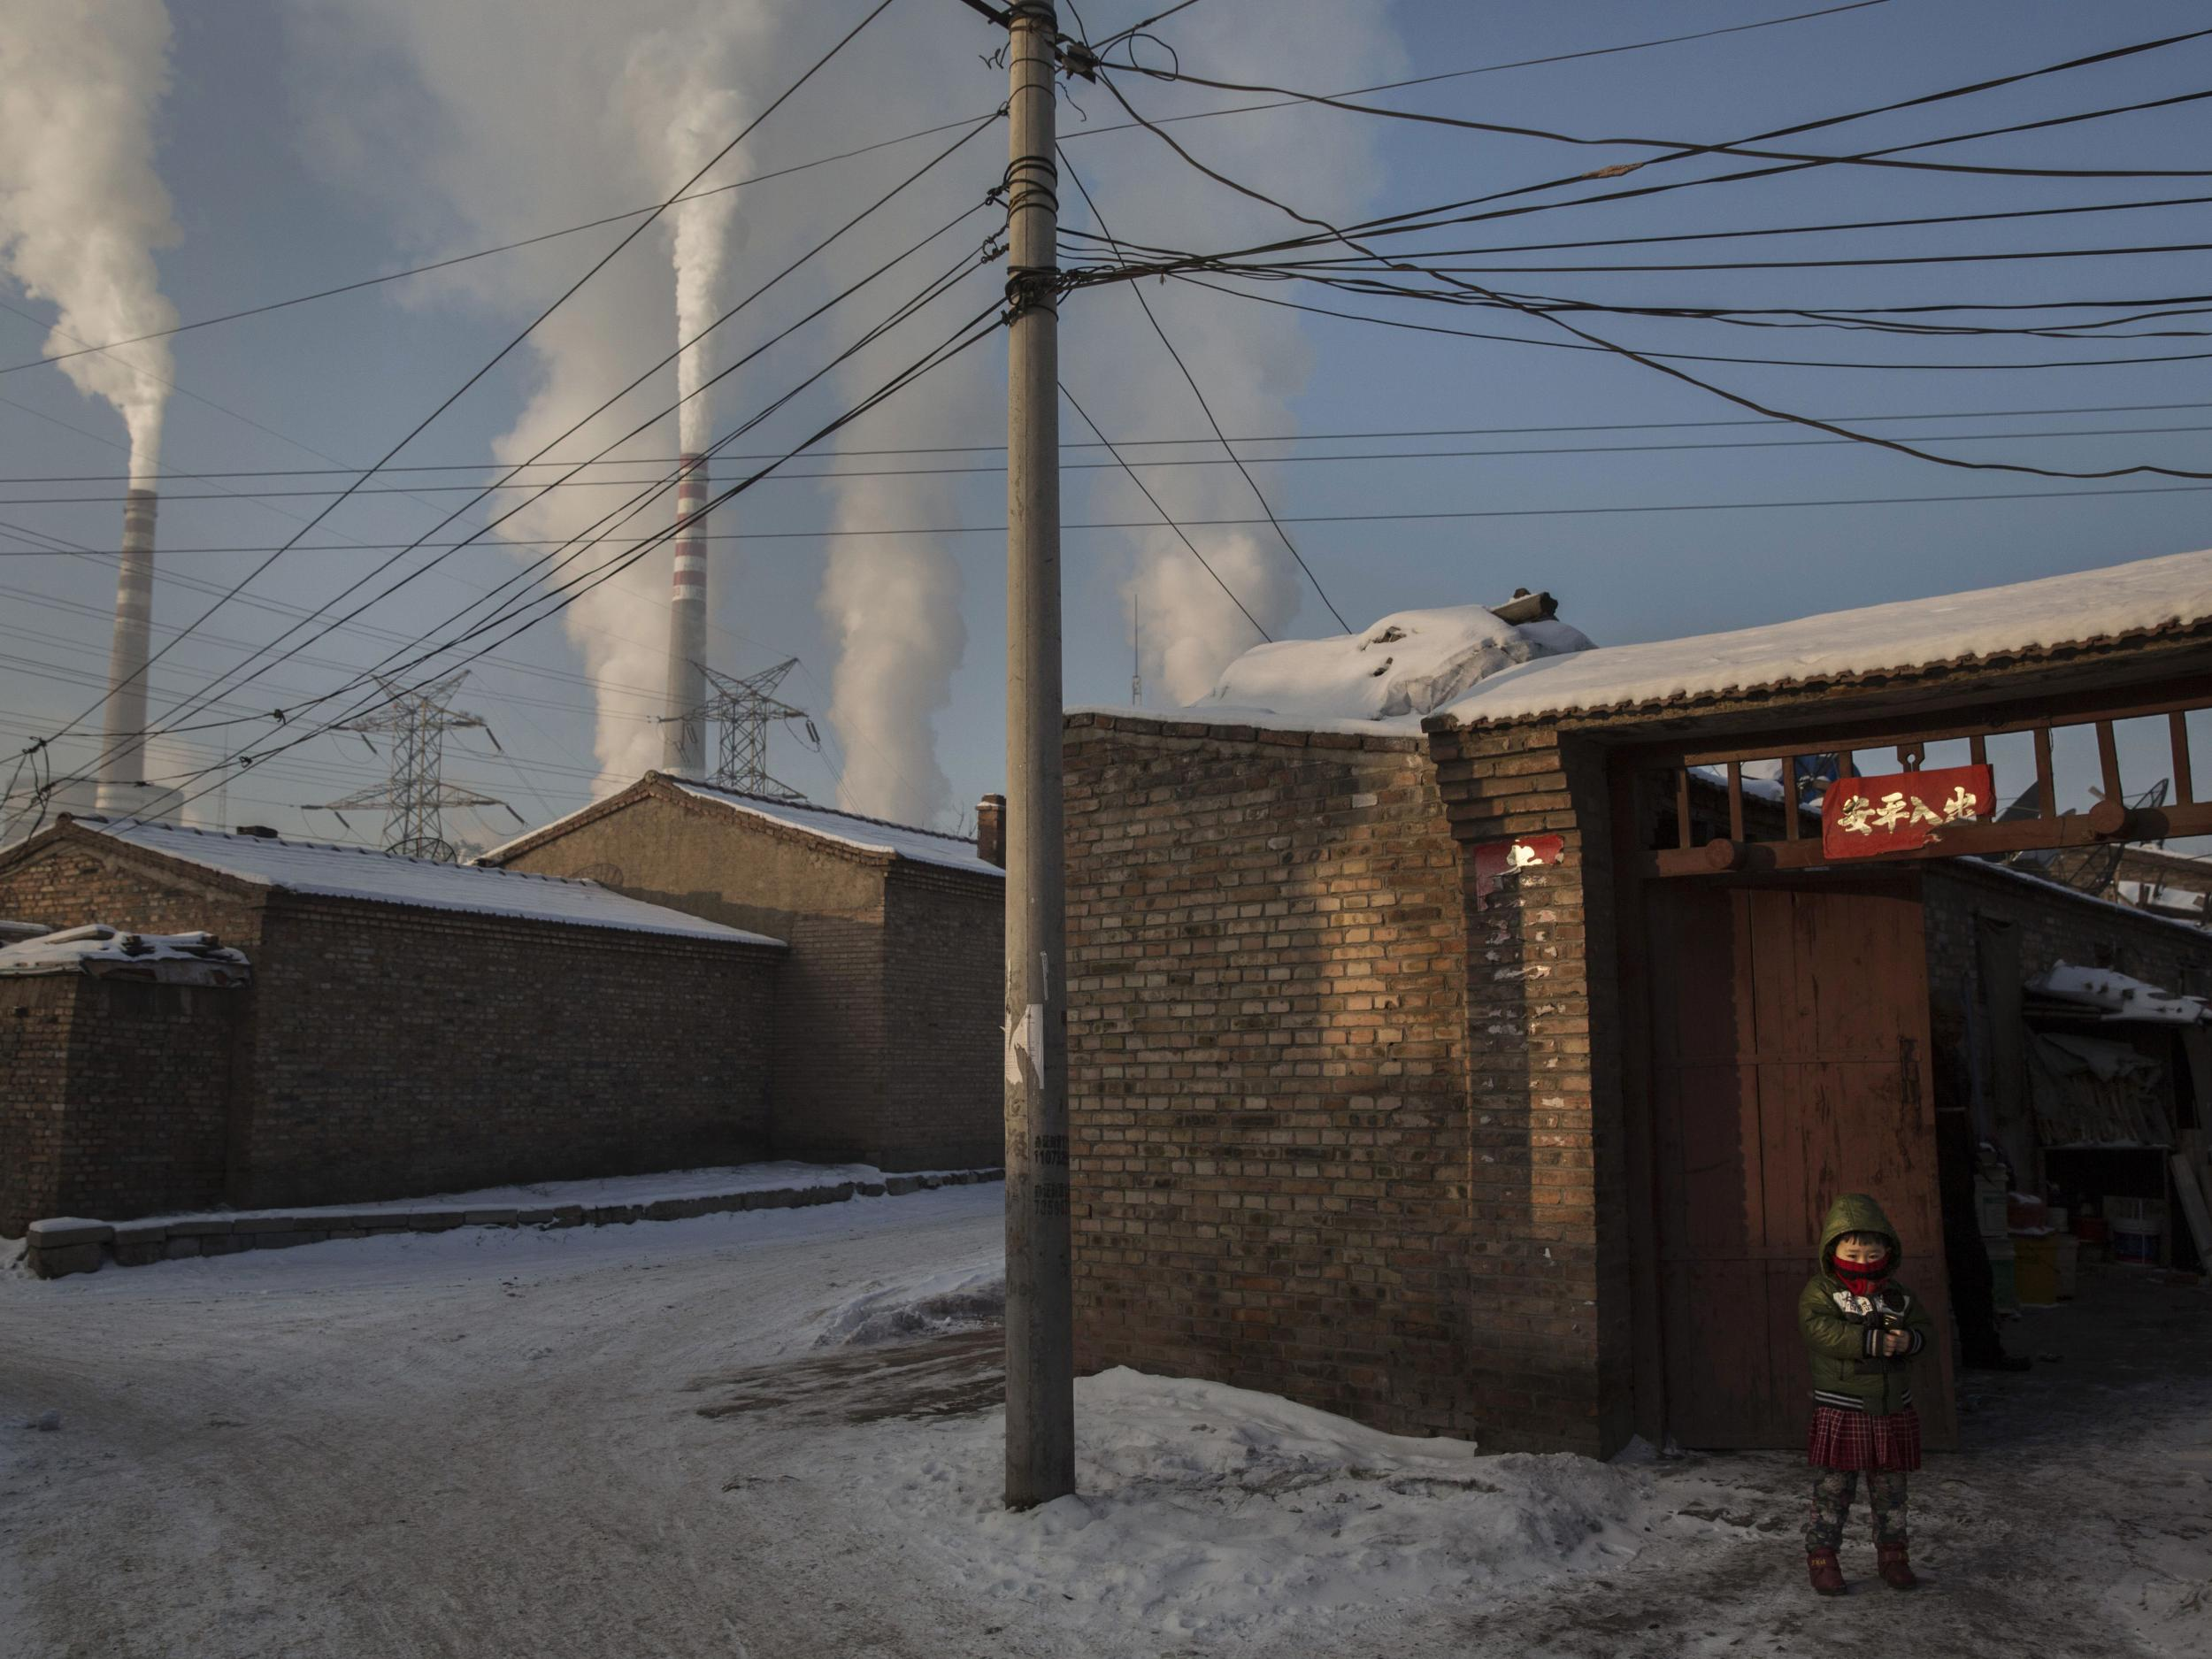 Closing coal and oil power plants leads to healthier babies being born, finds study: 'Perhaps it's time for the health of our children to be the impetus behind reducing the common sources of ambient air pollution. Their lives depend on it'